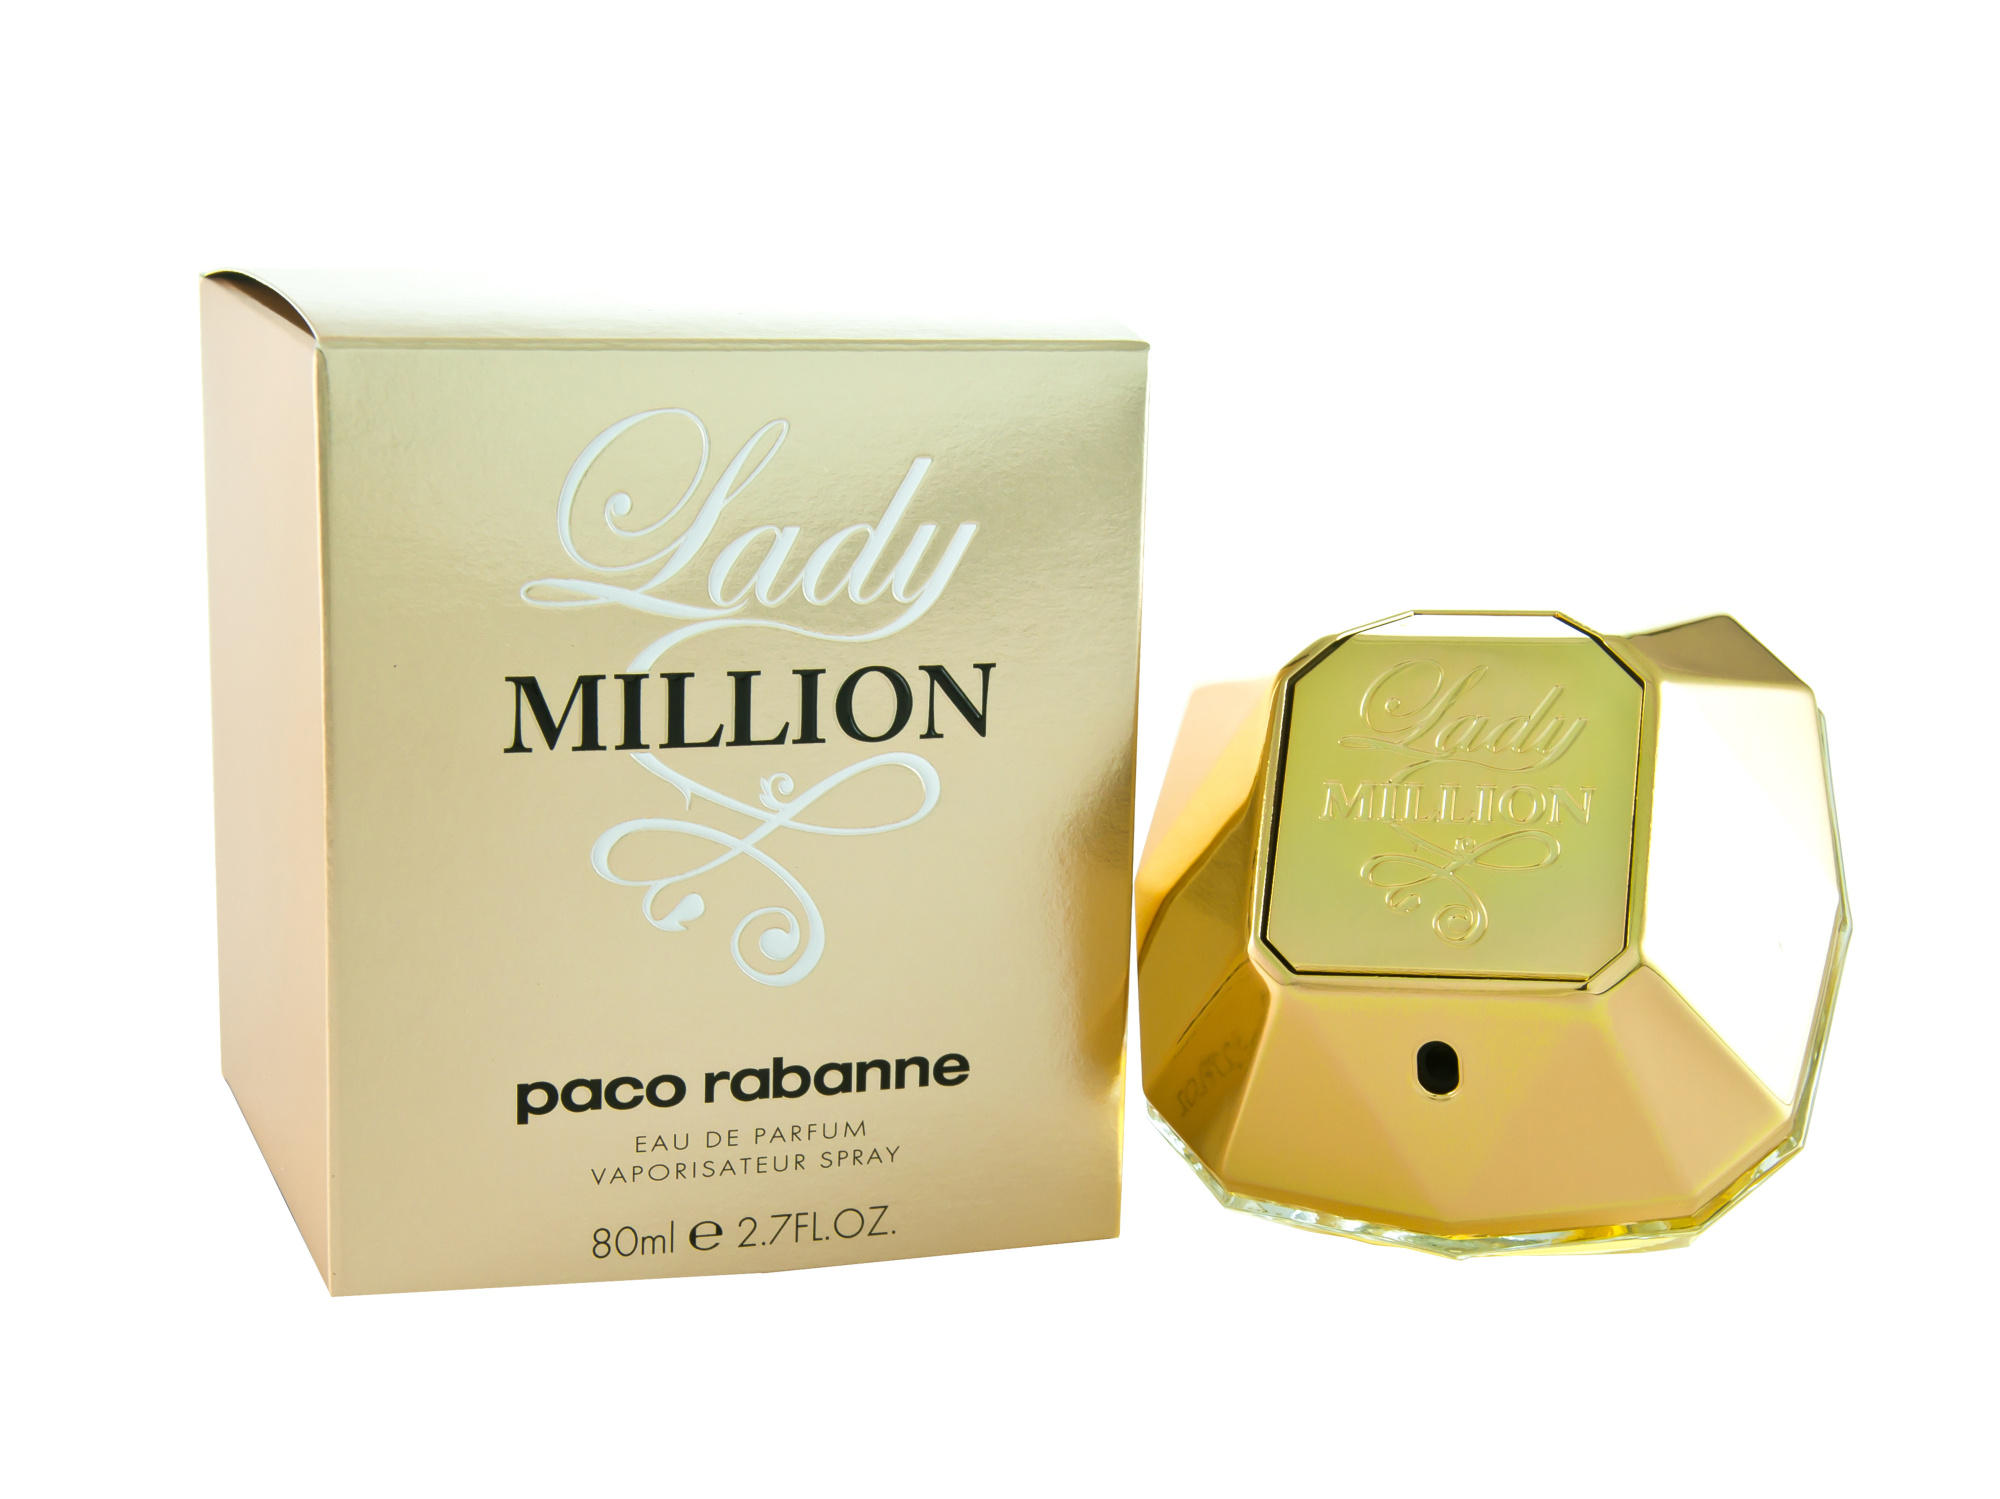 paco rabanne lady million eau de parfum spray chemist direct. Black Bedroom Furniture Sets. Home Design Ideas